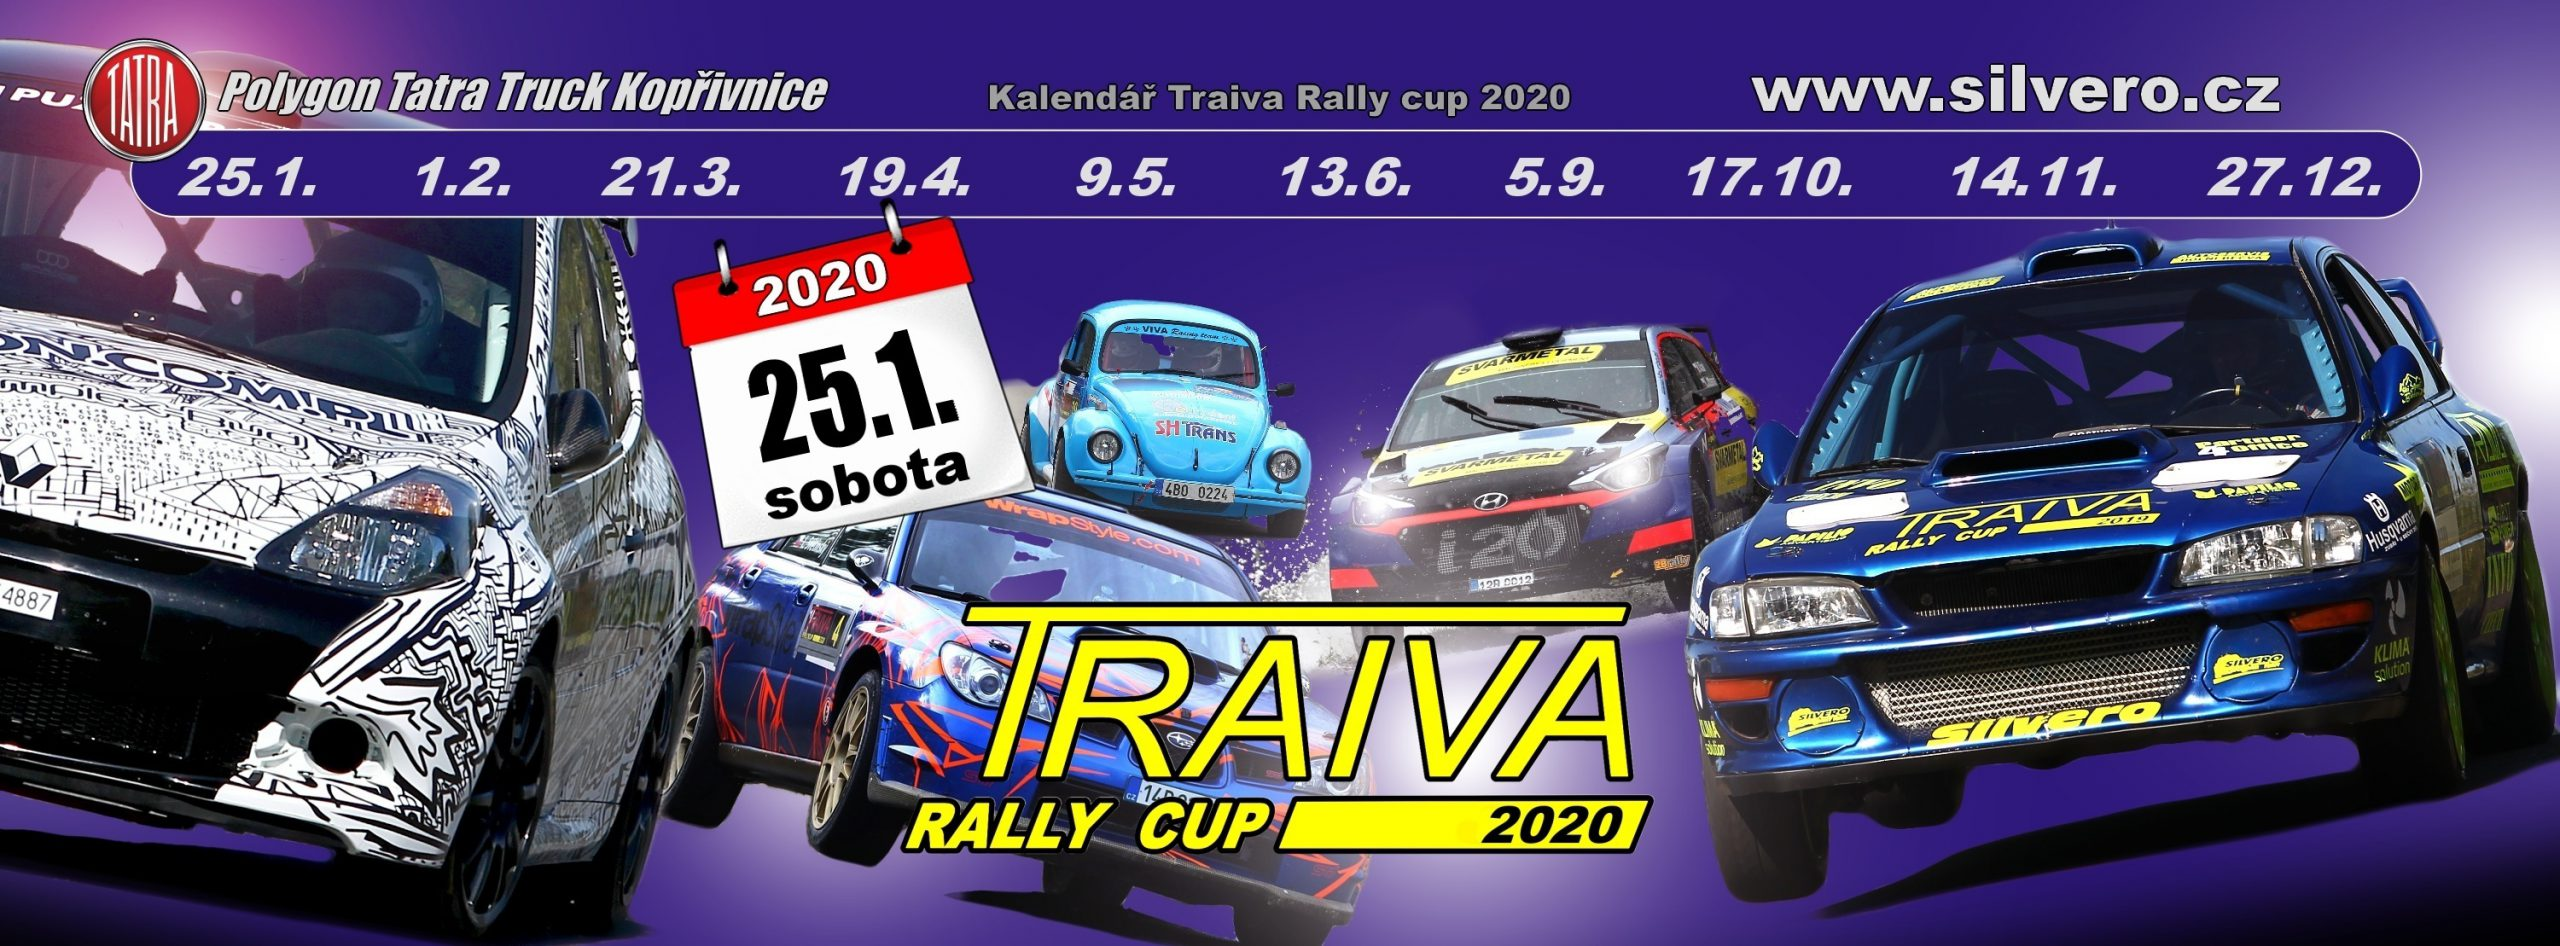 kalendar2020-scaled Traiva Rallye cup